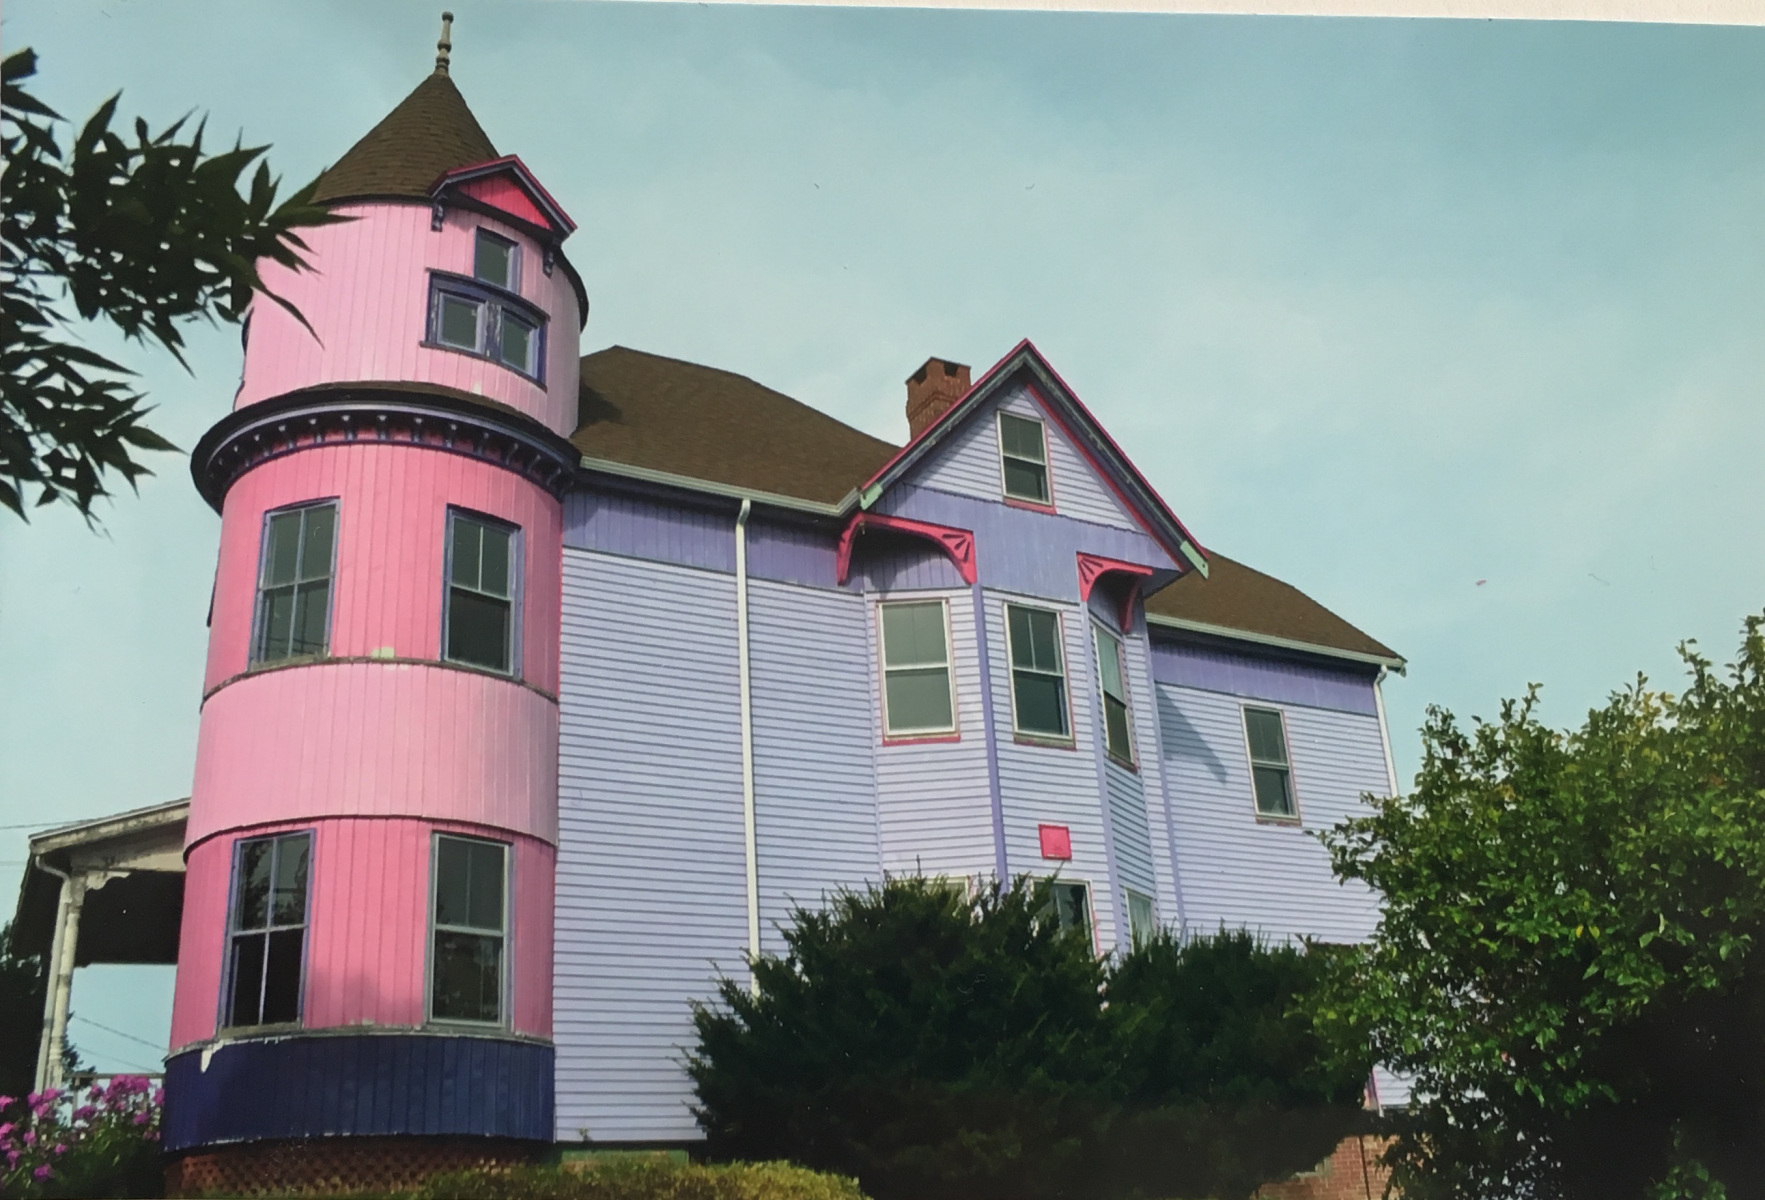 Jenilyn LaRose, Independent, received top blue ribbon in the Architecture category for Pink + Purple House.  Soren Danielson won second blue in this category with Inside Outside.